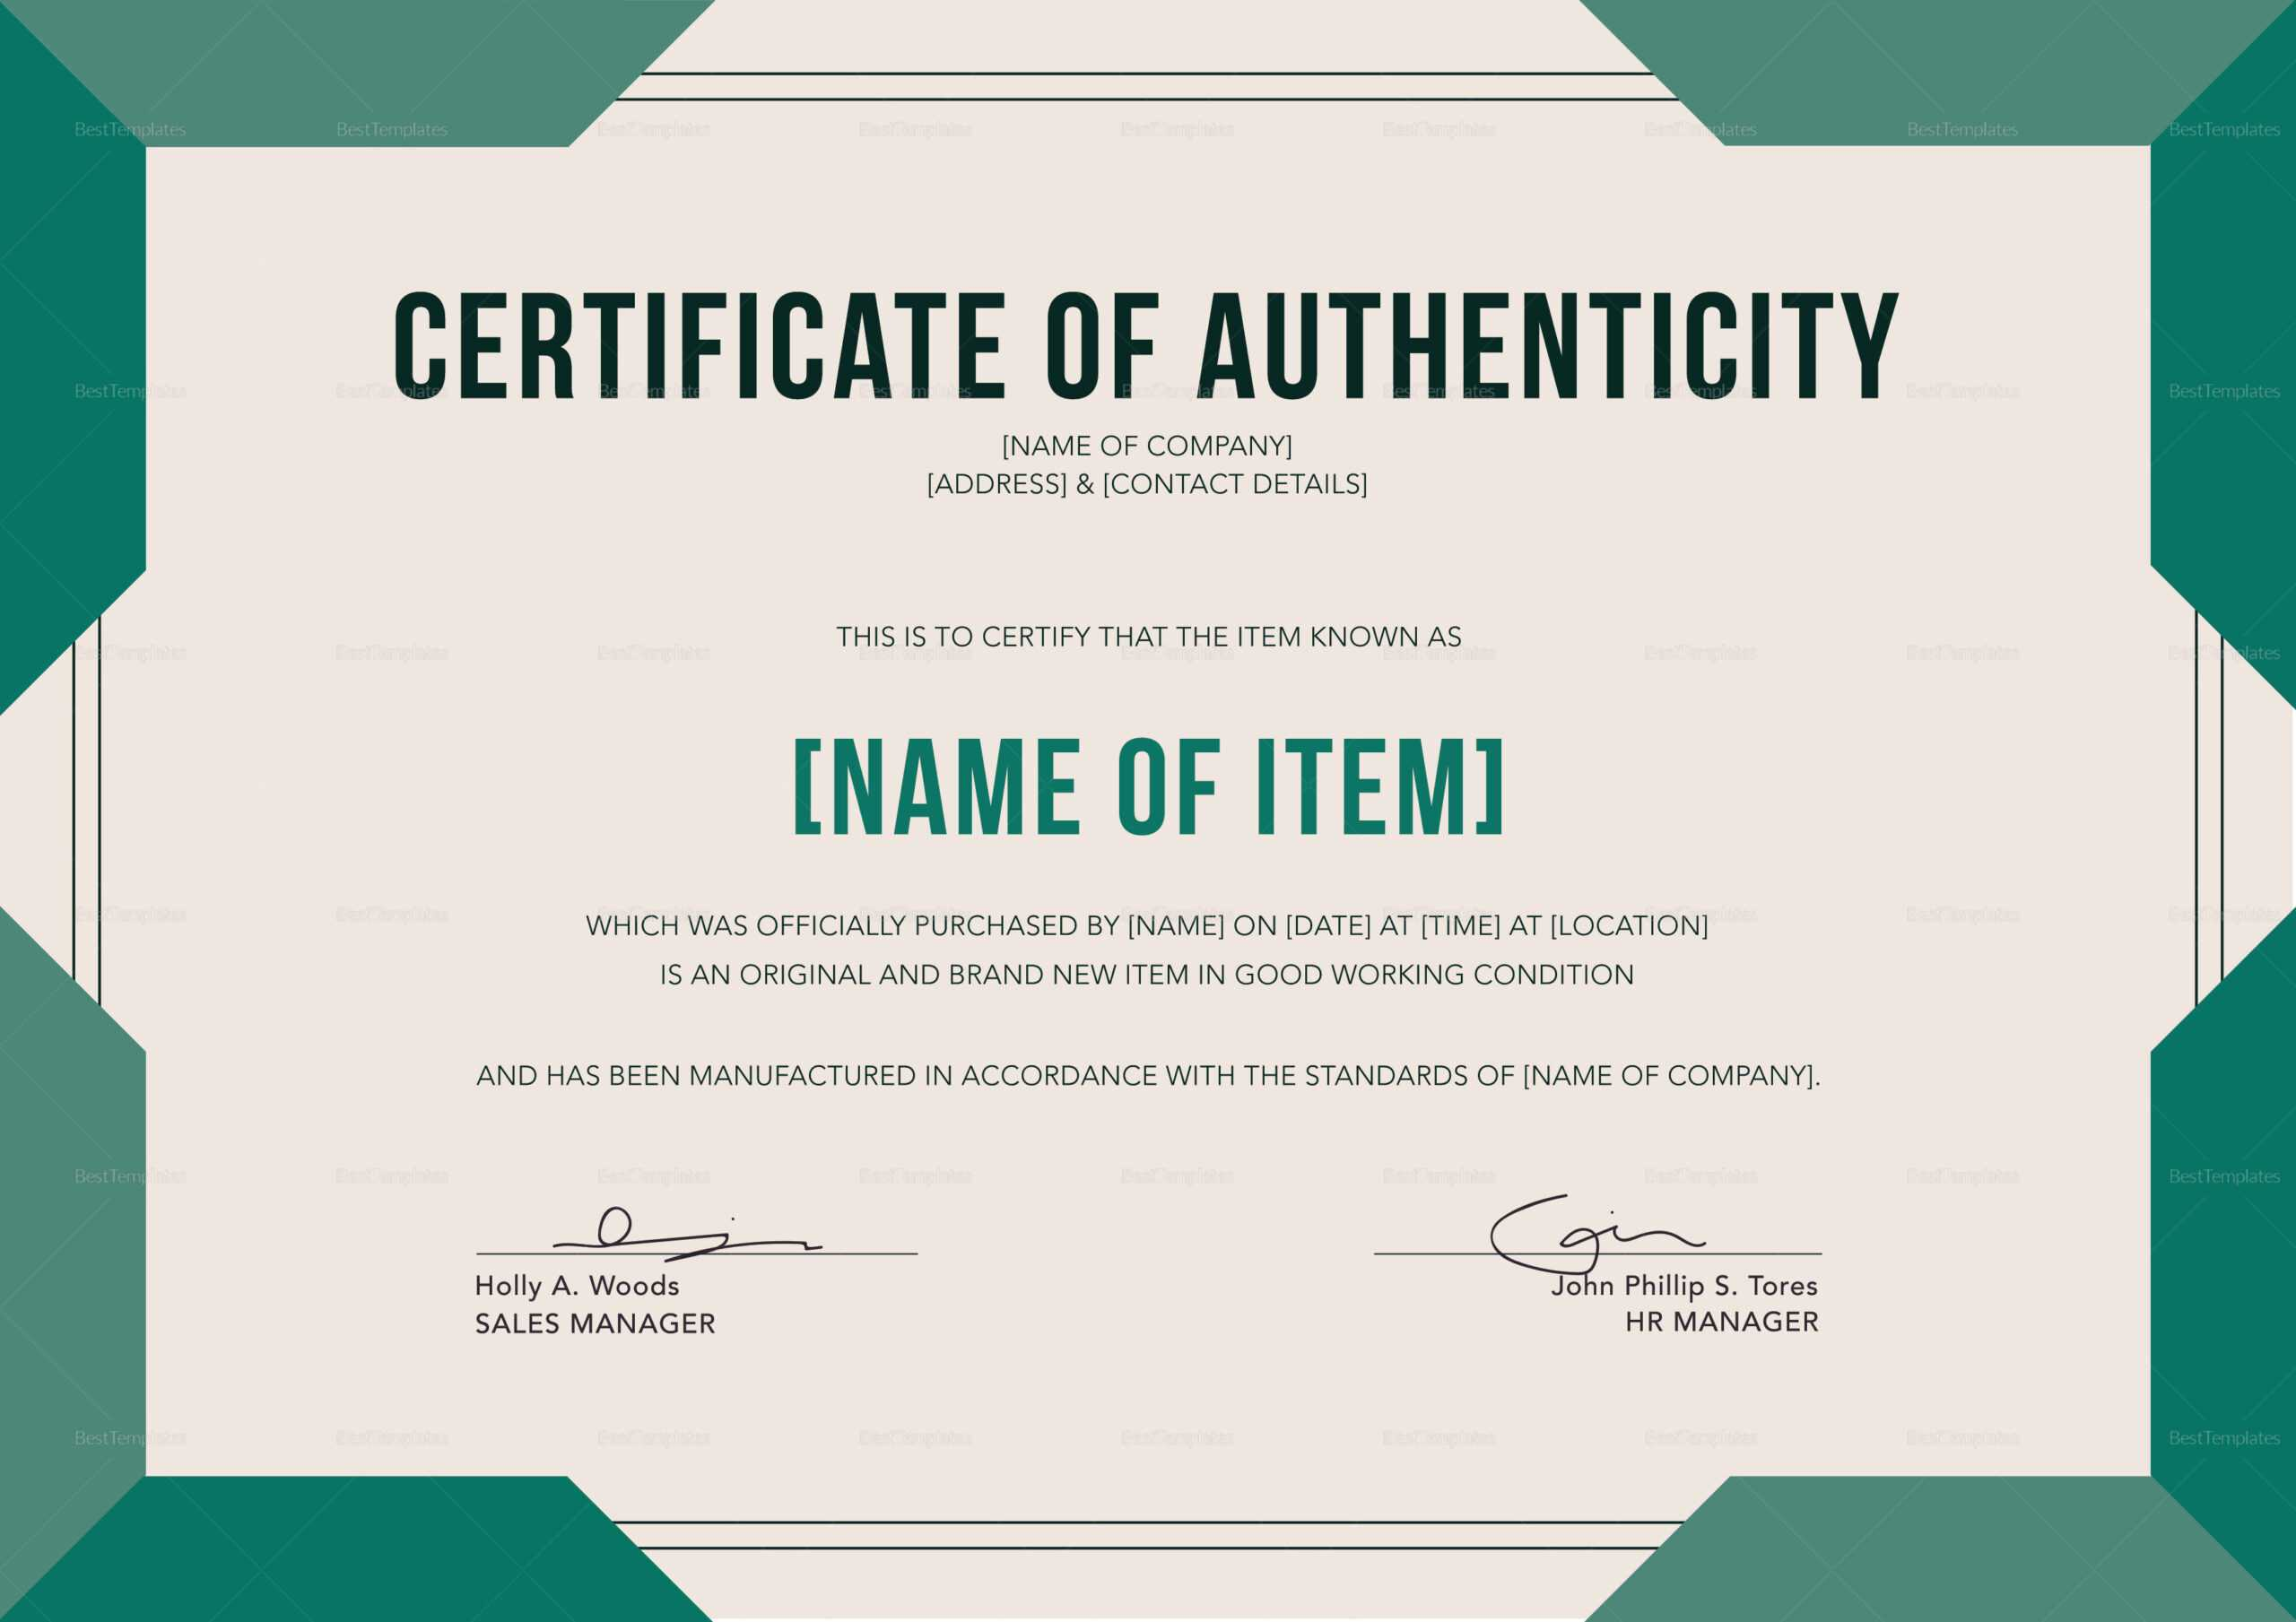 Elegant Certificate Of Authenticity Template Throughout Certificate Of Authenticity Template